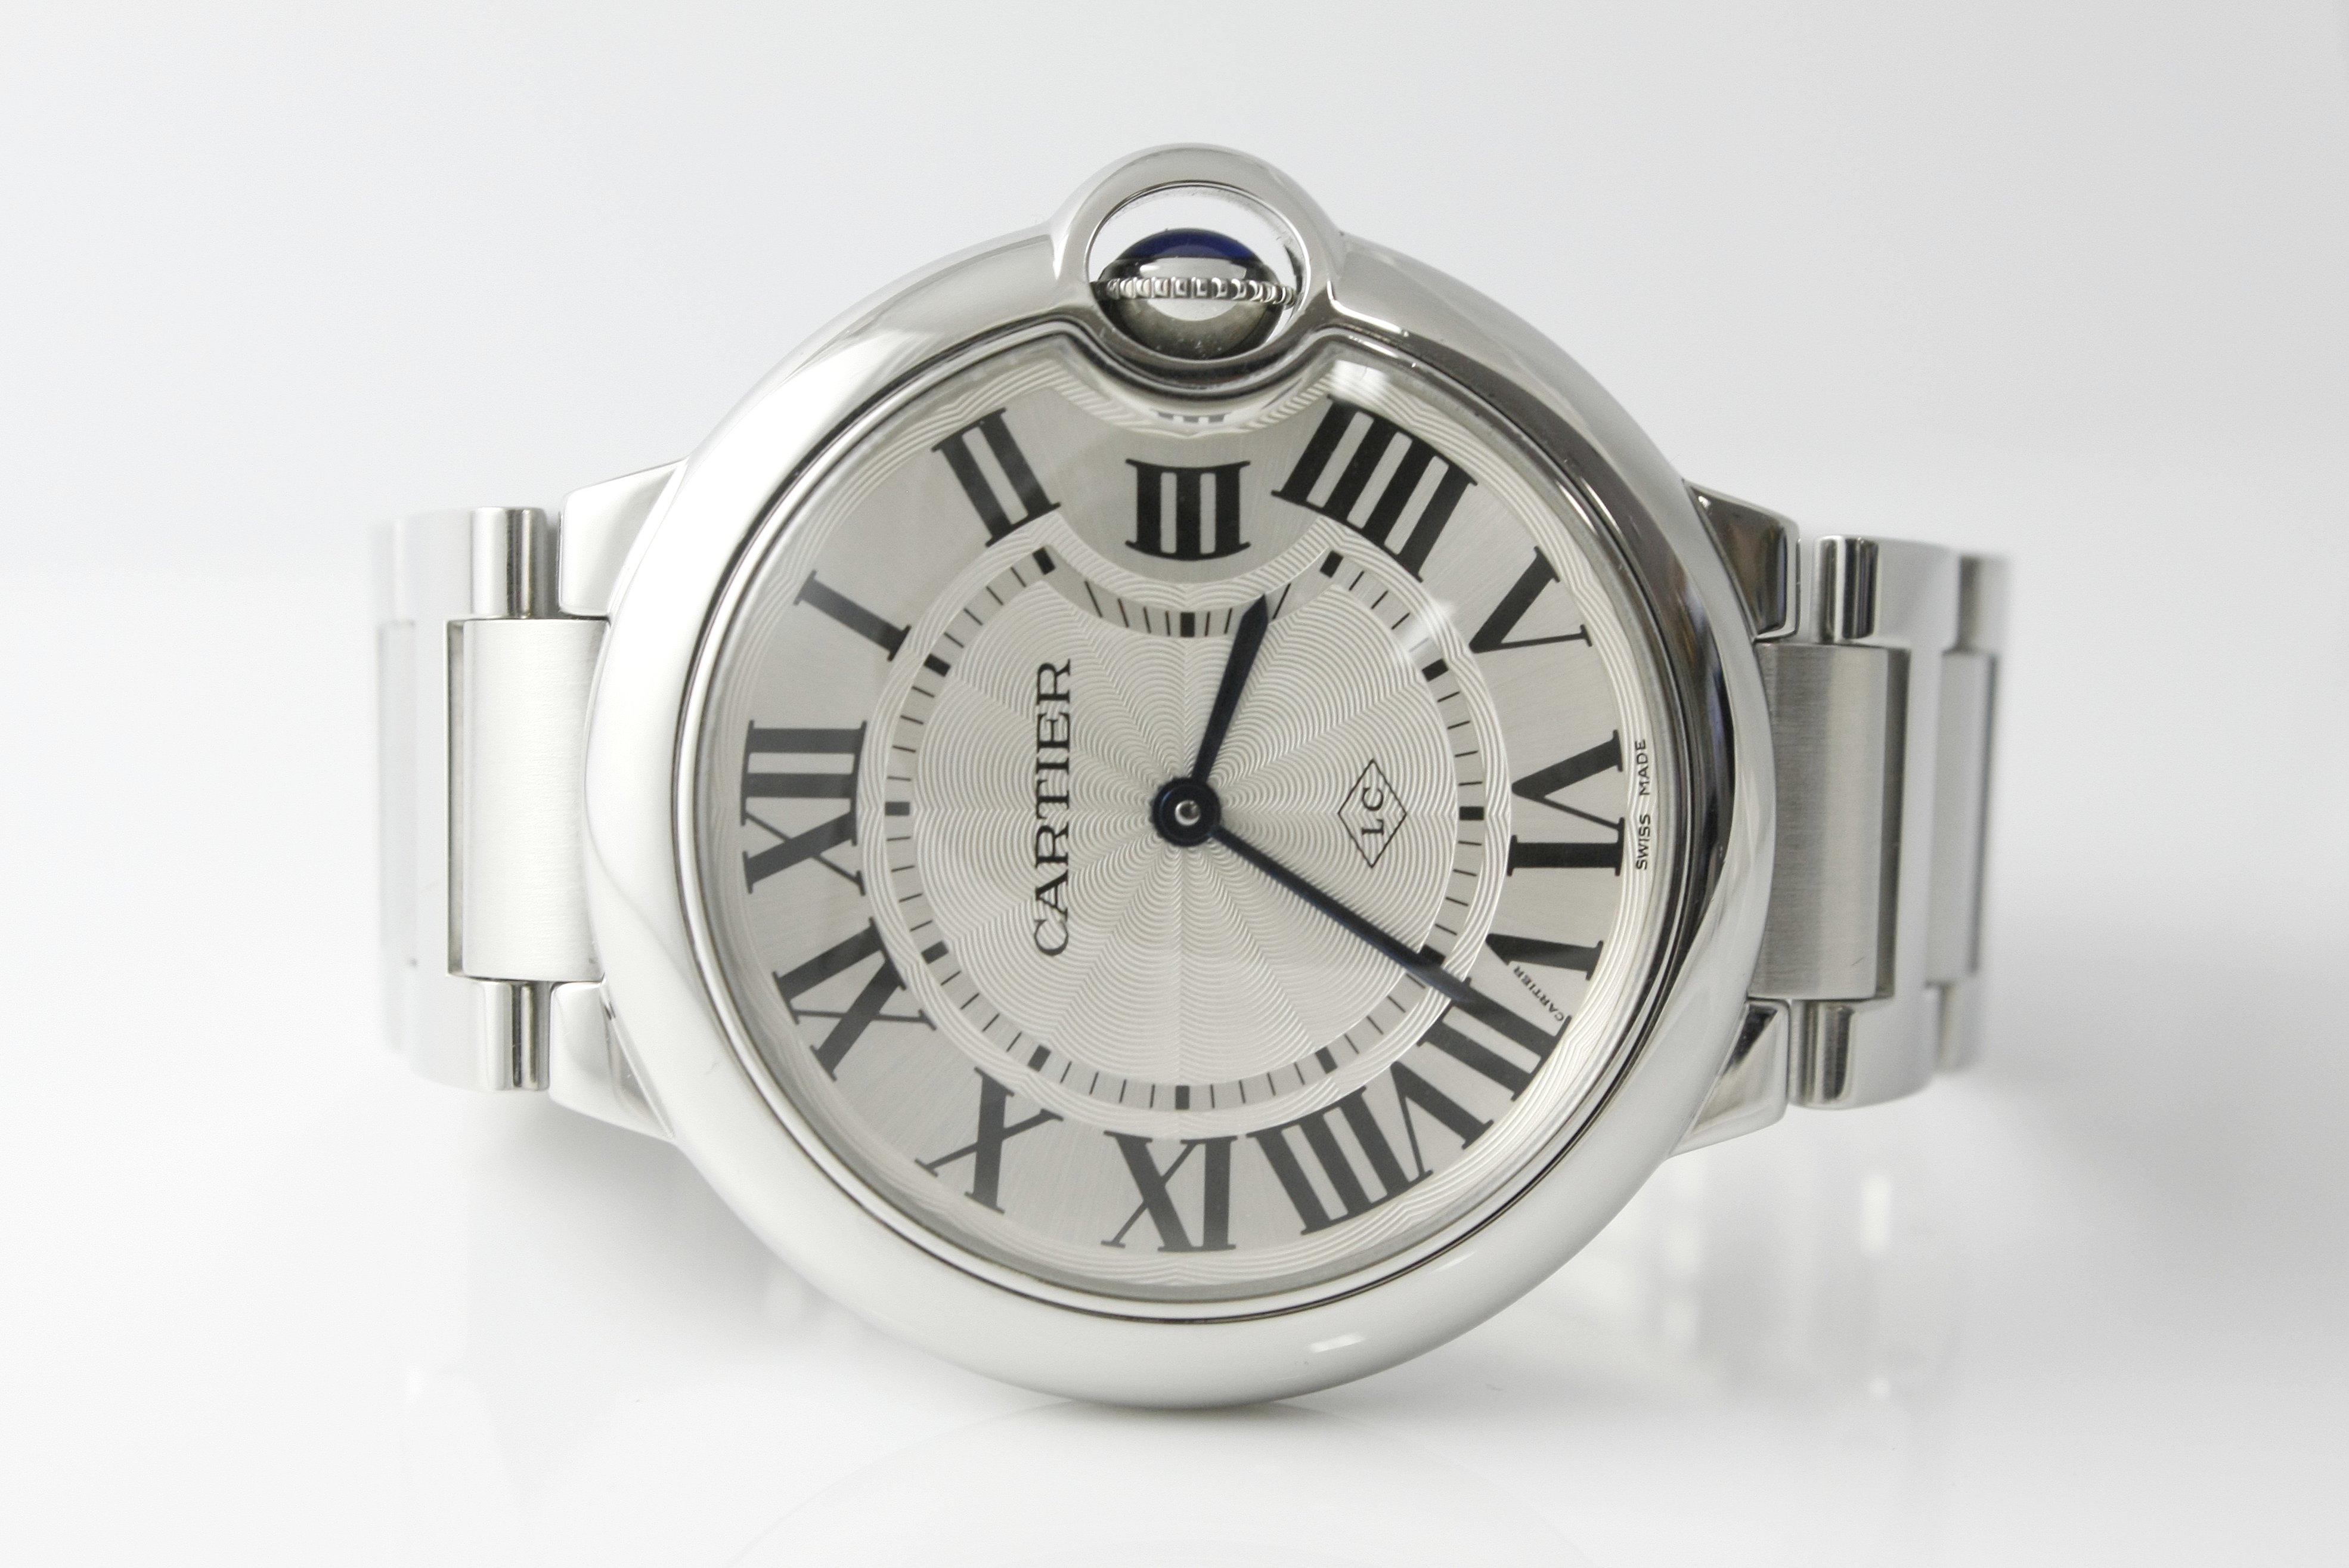 Cartier Ballon Bleu - $2,800